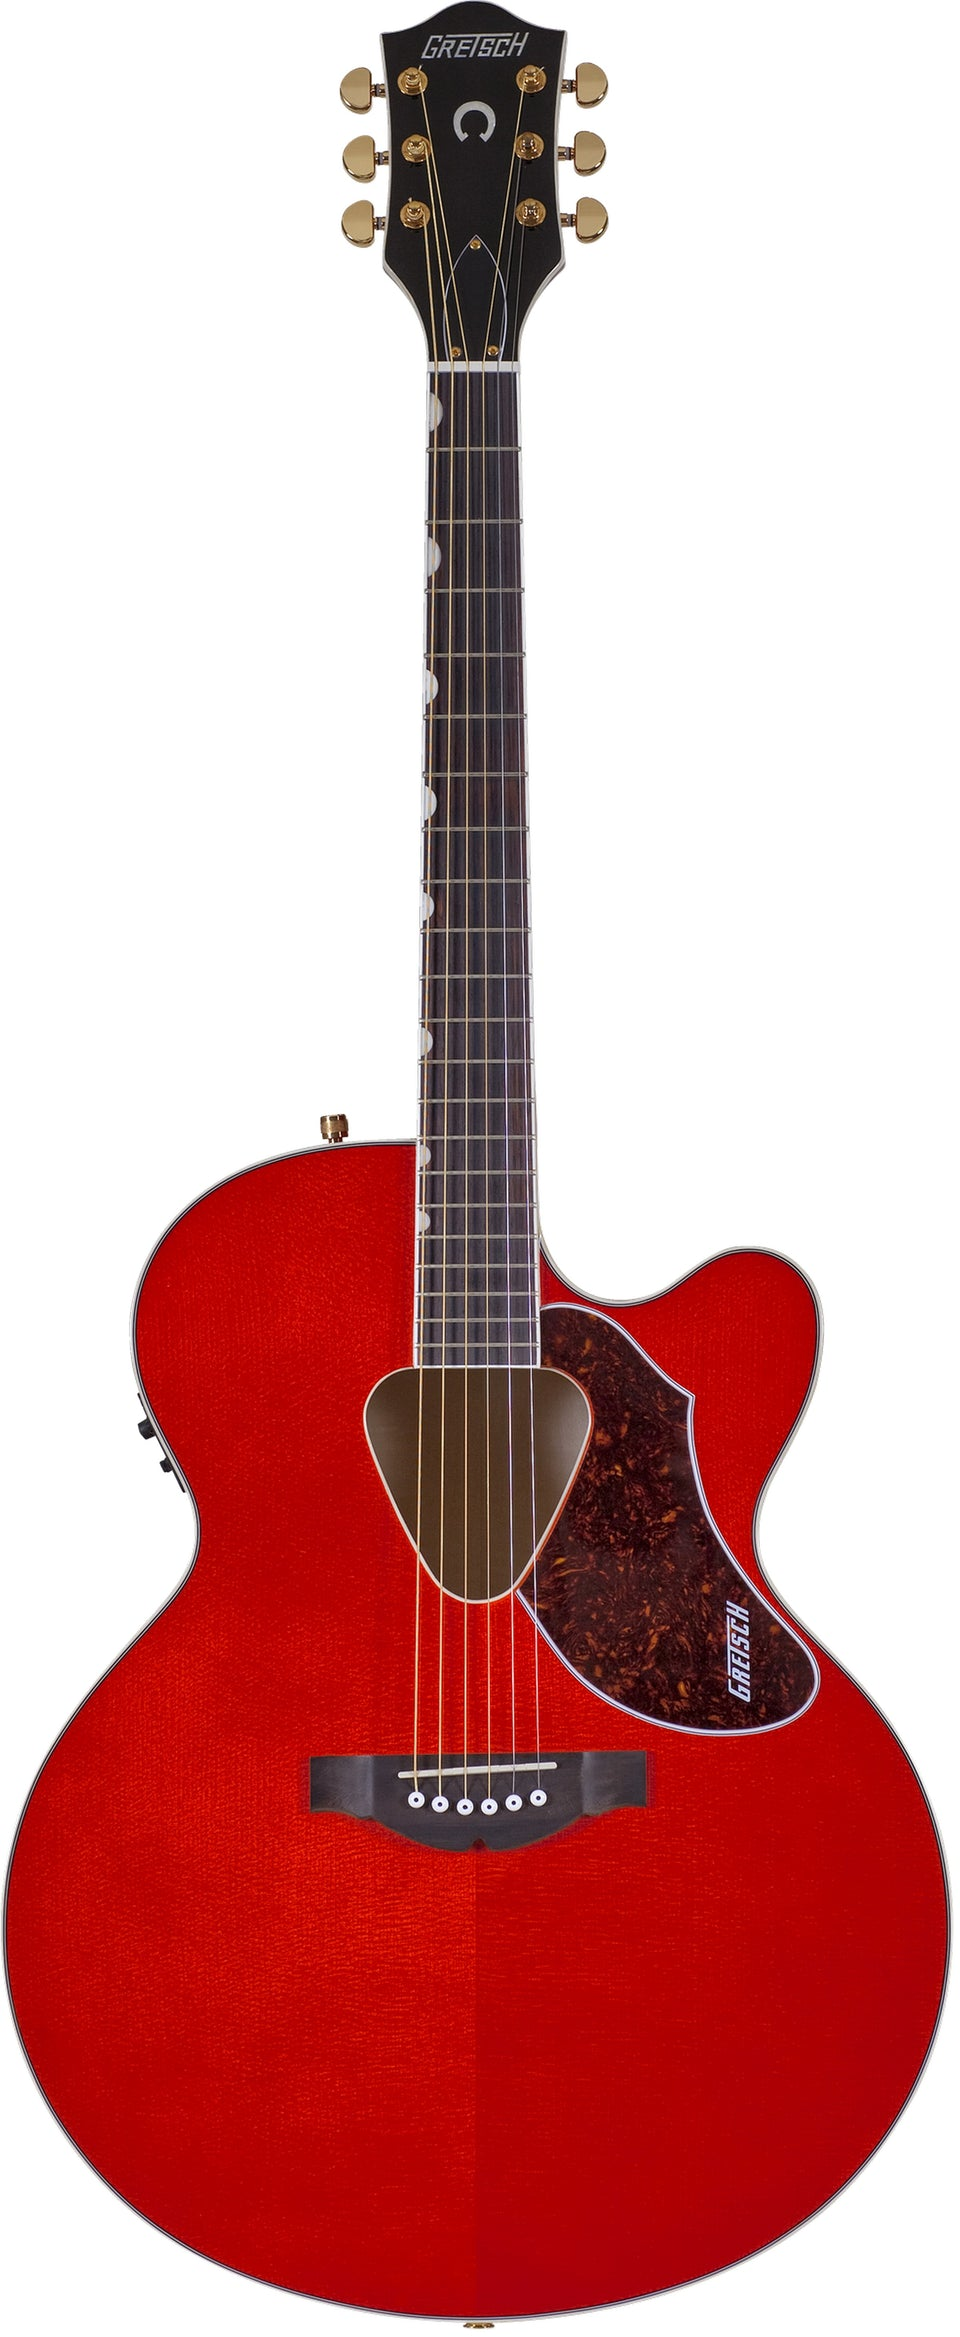 Gretsch G5022CE Rancher Jumbo Cutaway Acoustic Electric Guitar - Savannah Sunset